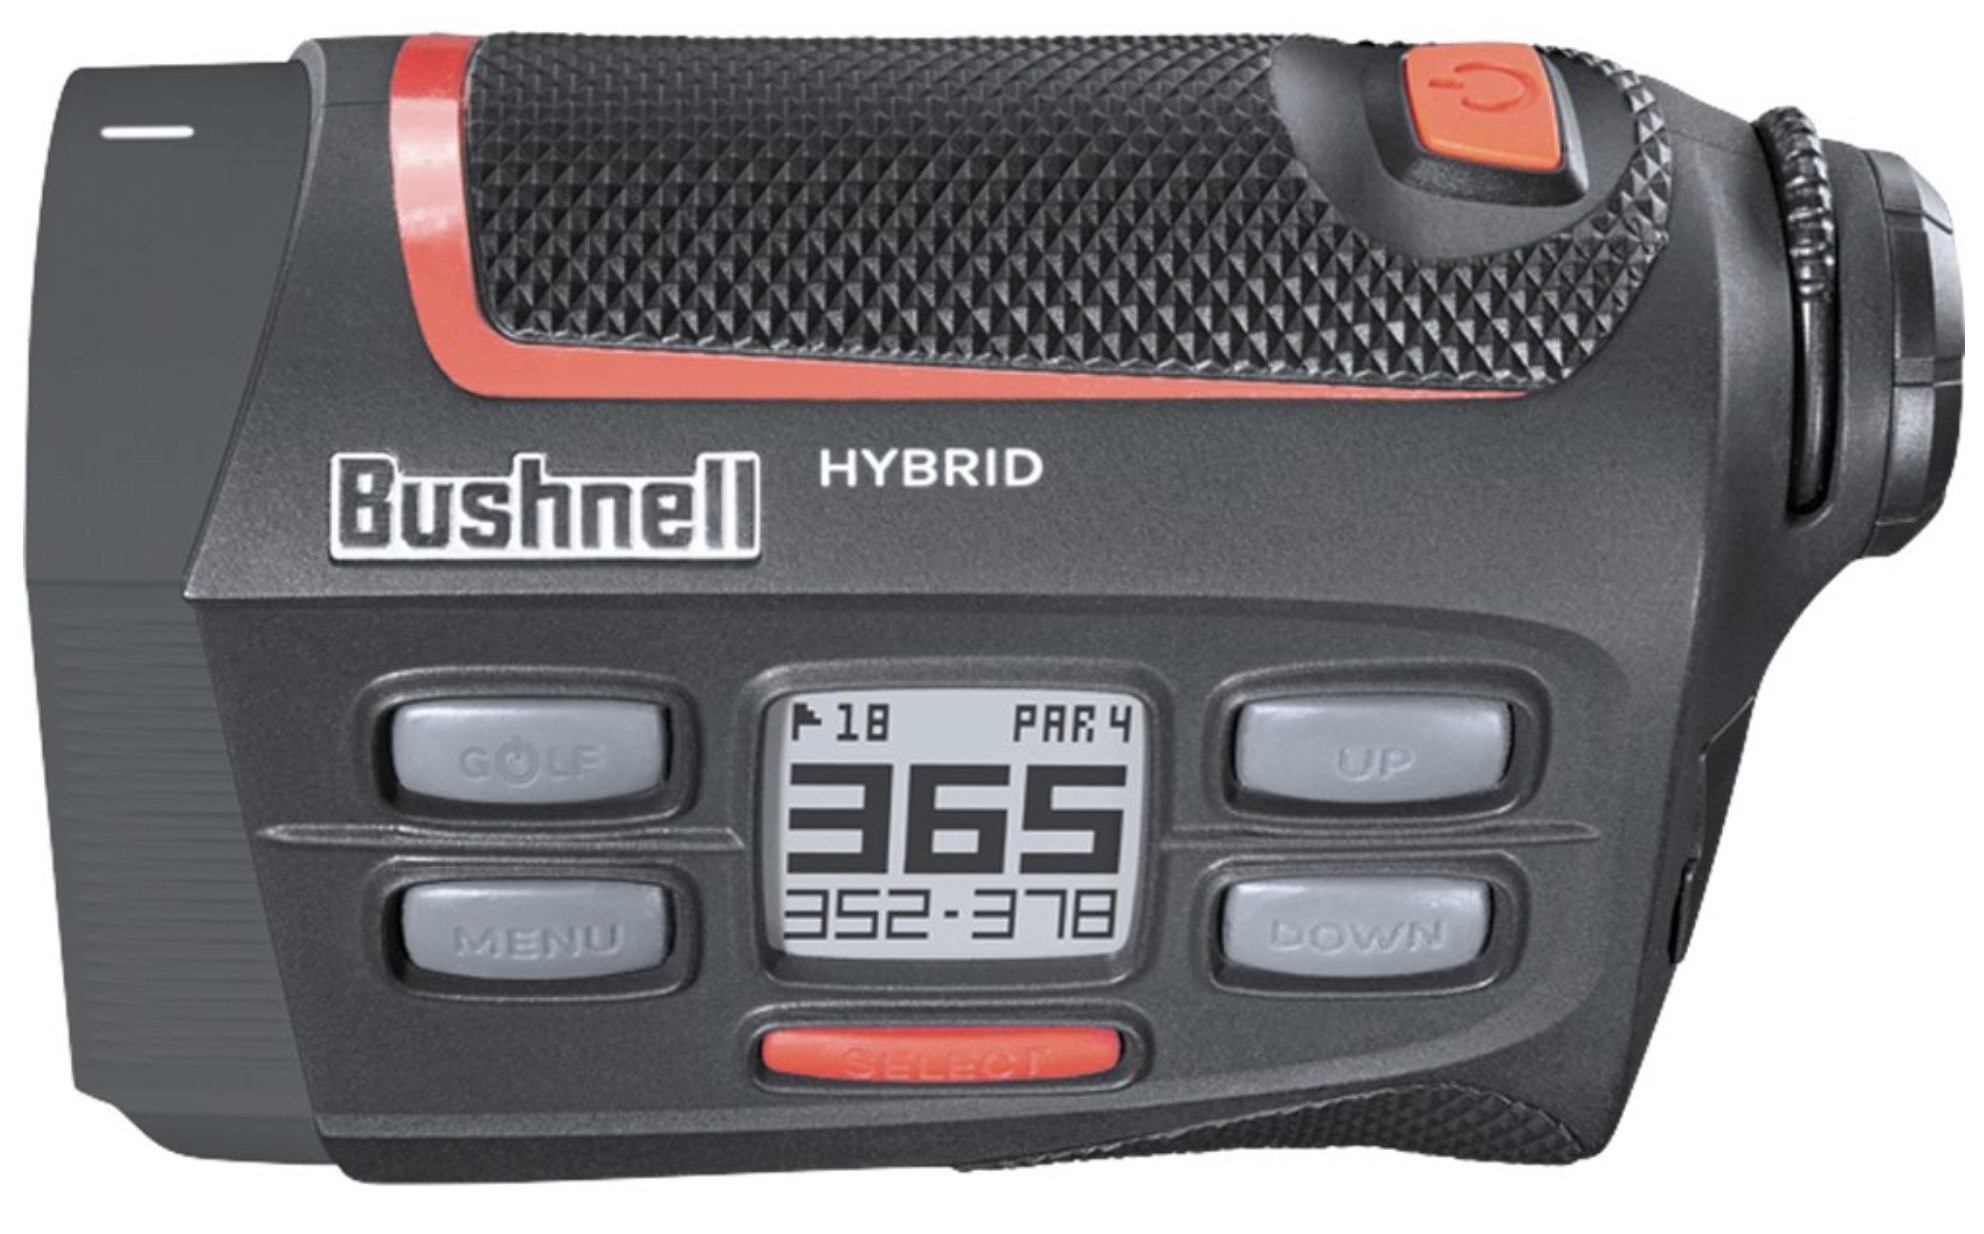 Bushnell Hybrid GPS laser golf rangefinder - left top view